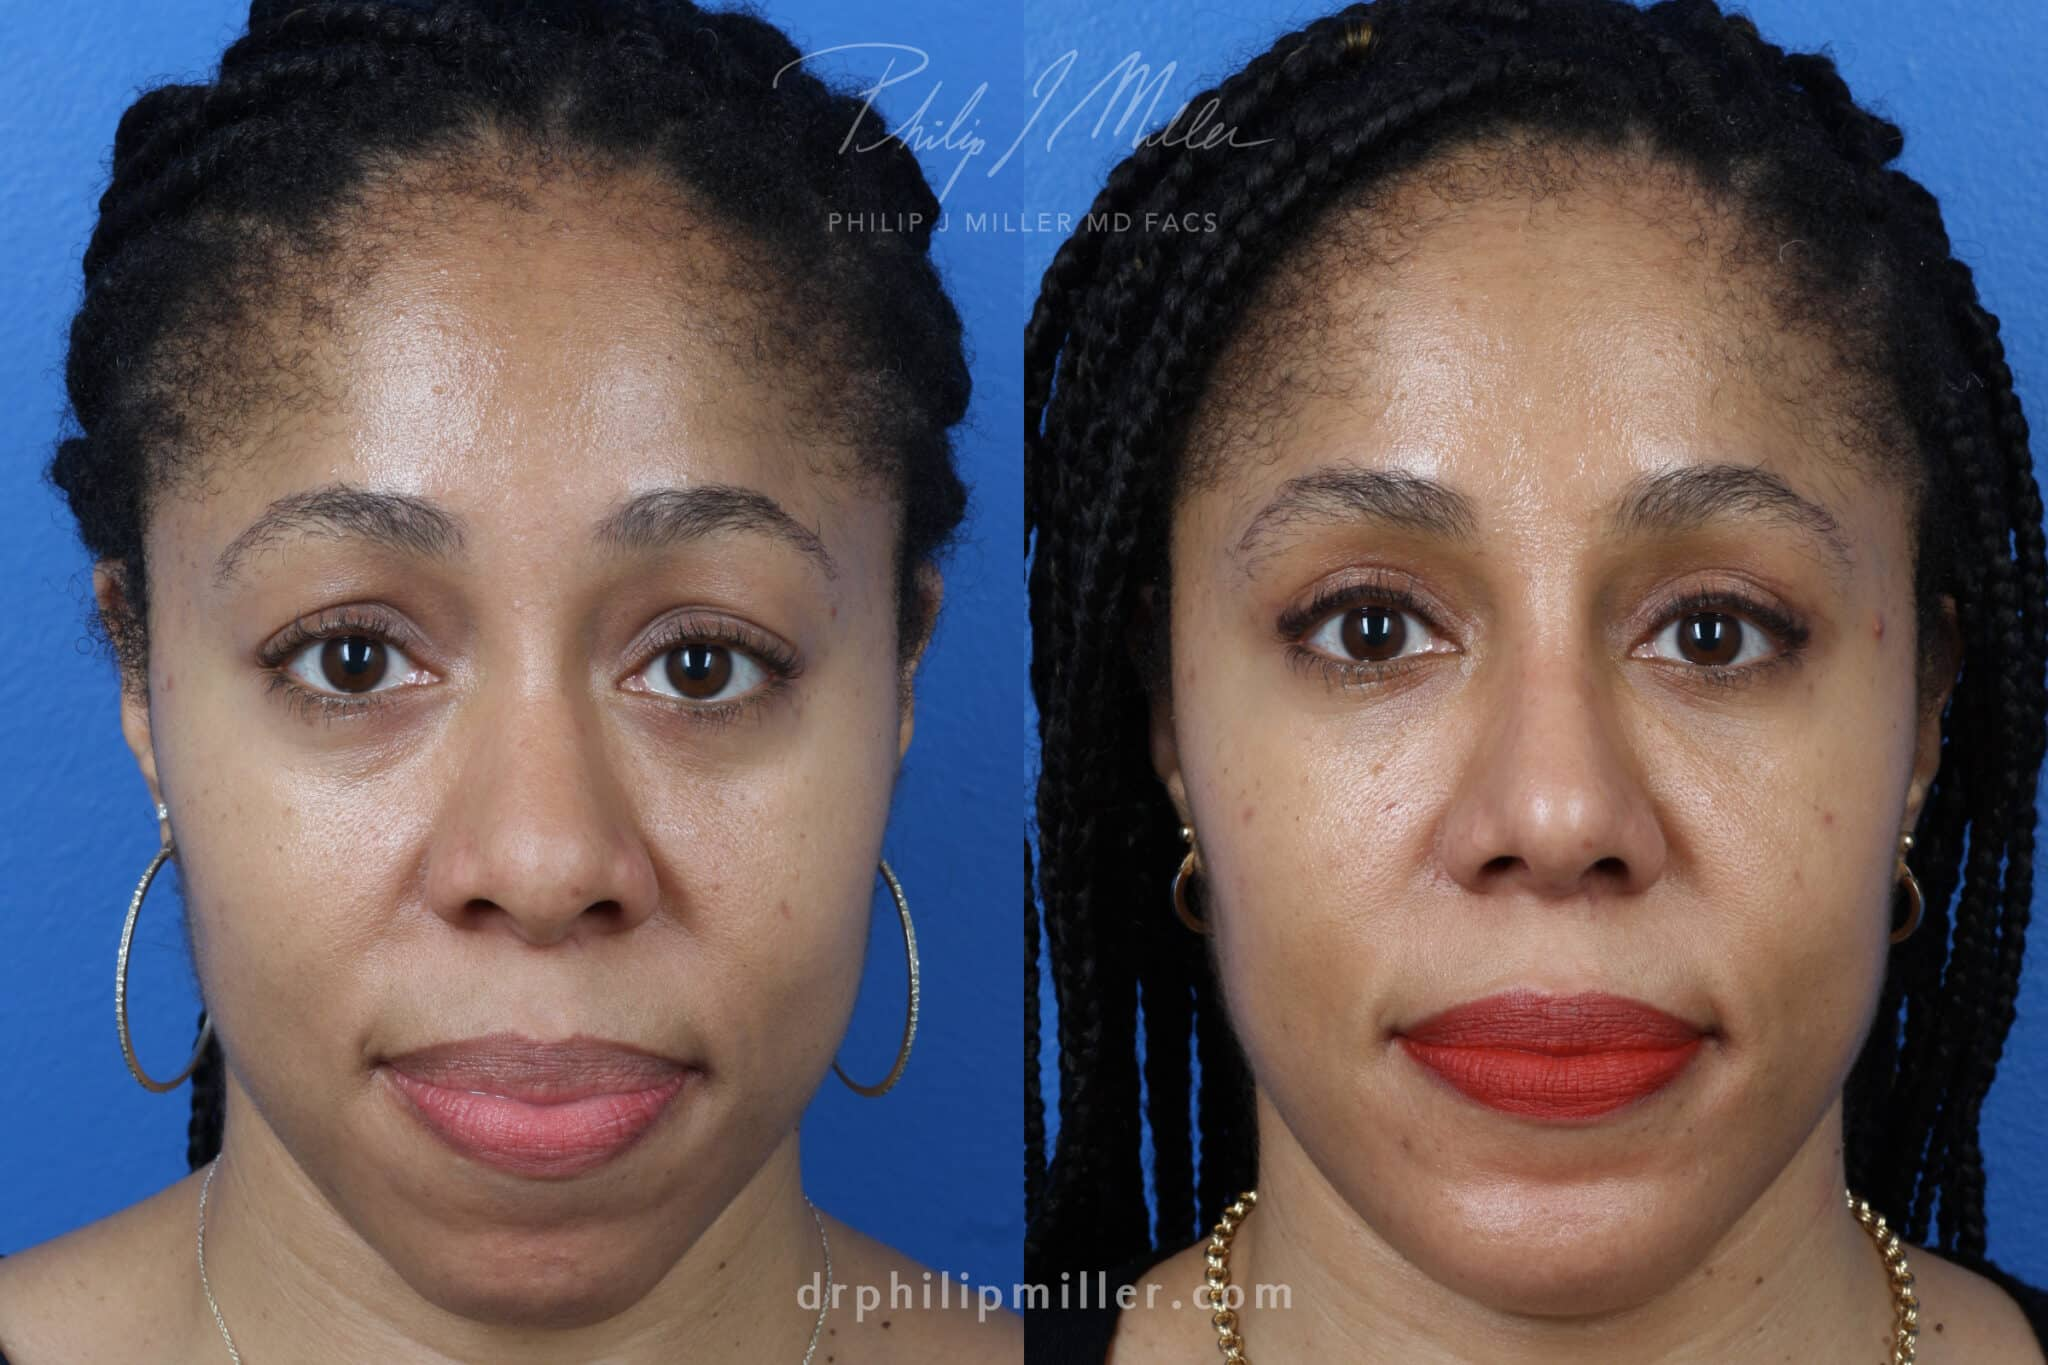 Rhinoplasty, Upper Blepharoplasty, Chin Implant, Fat Injections for Facial Contouring on a Female Patient by Dr. Miller